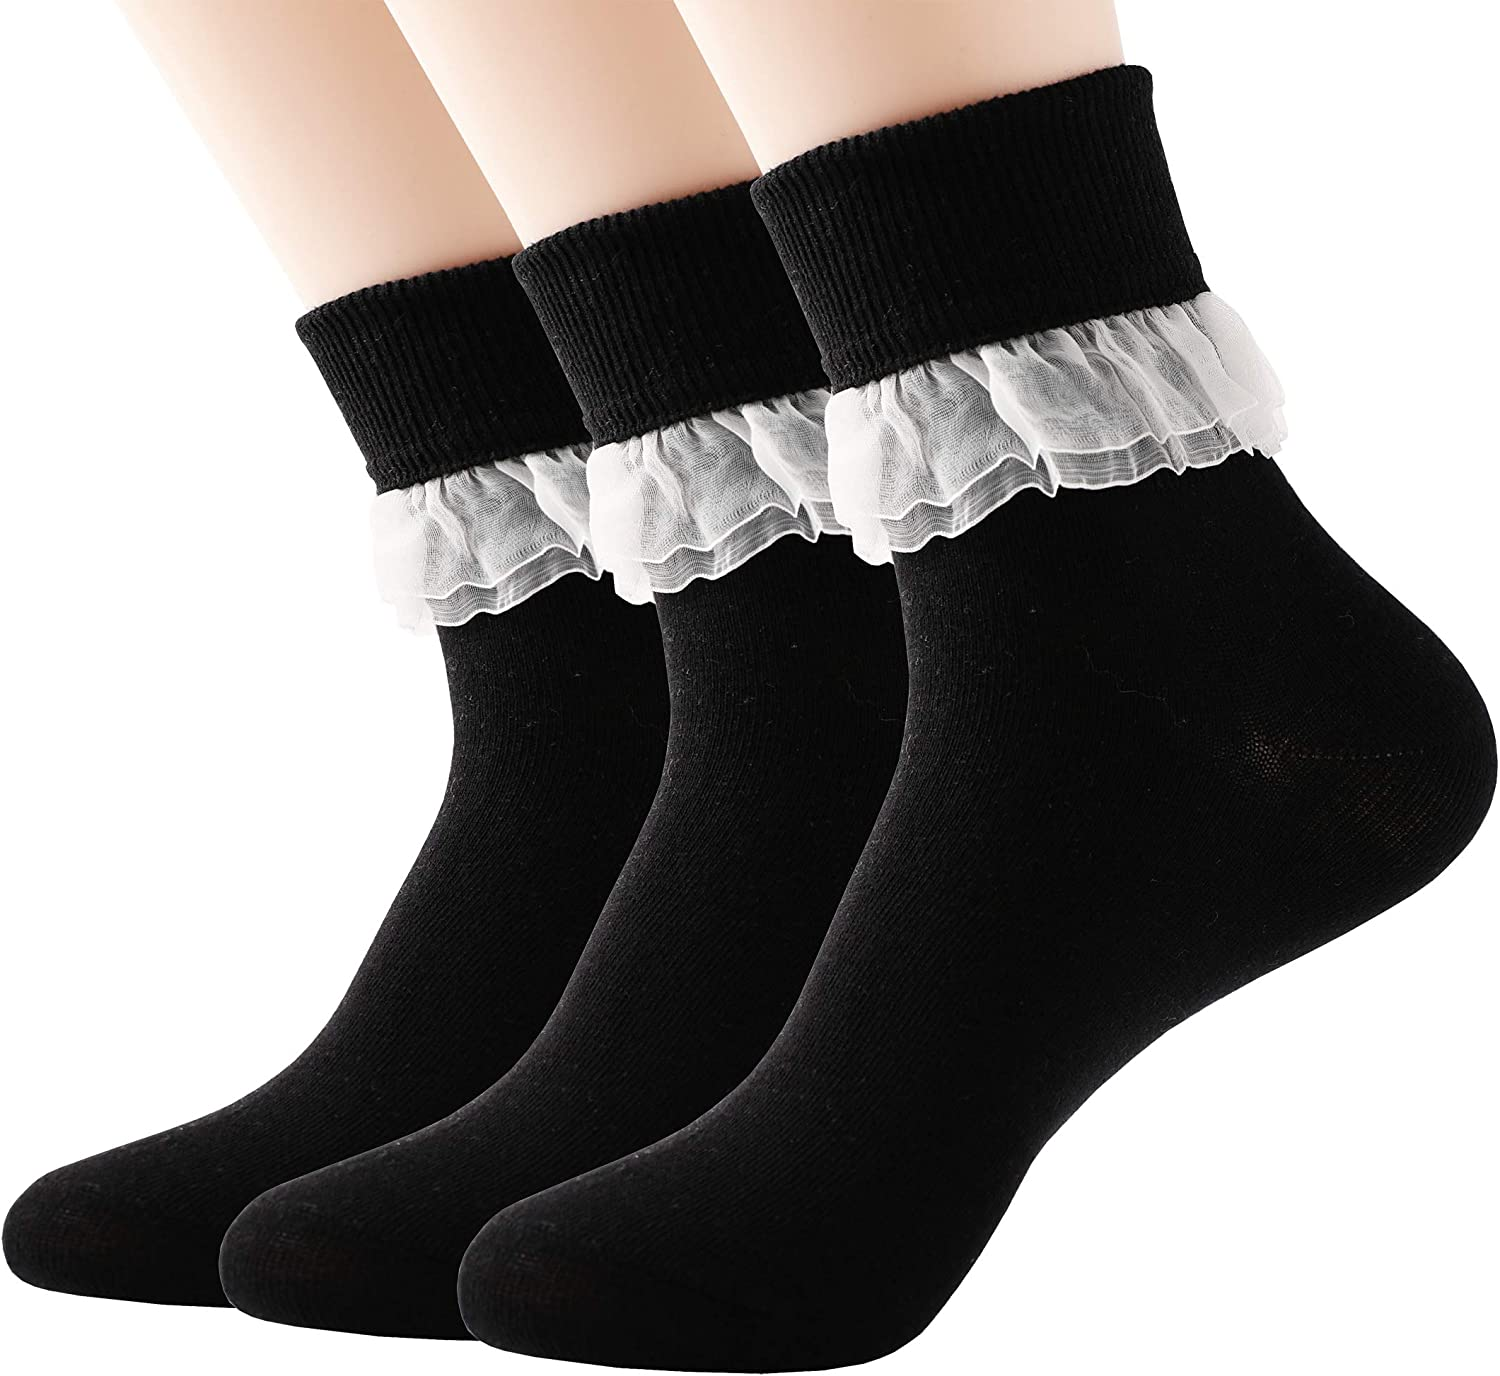 3Pair Middle Ankle Candy Color Boy Girl Child Kids School Stockings Cotton Socks